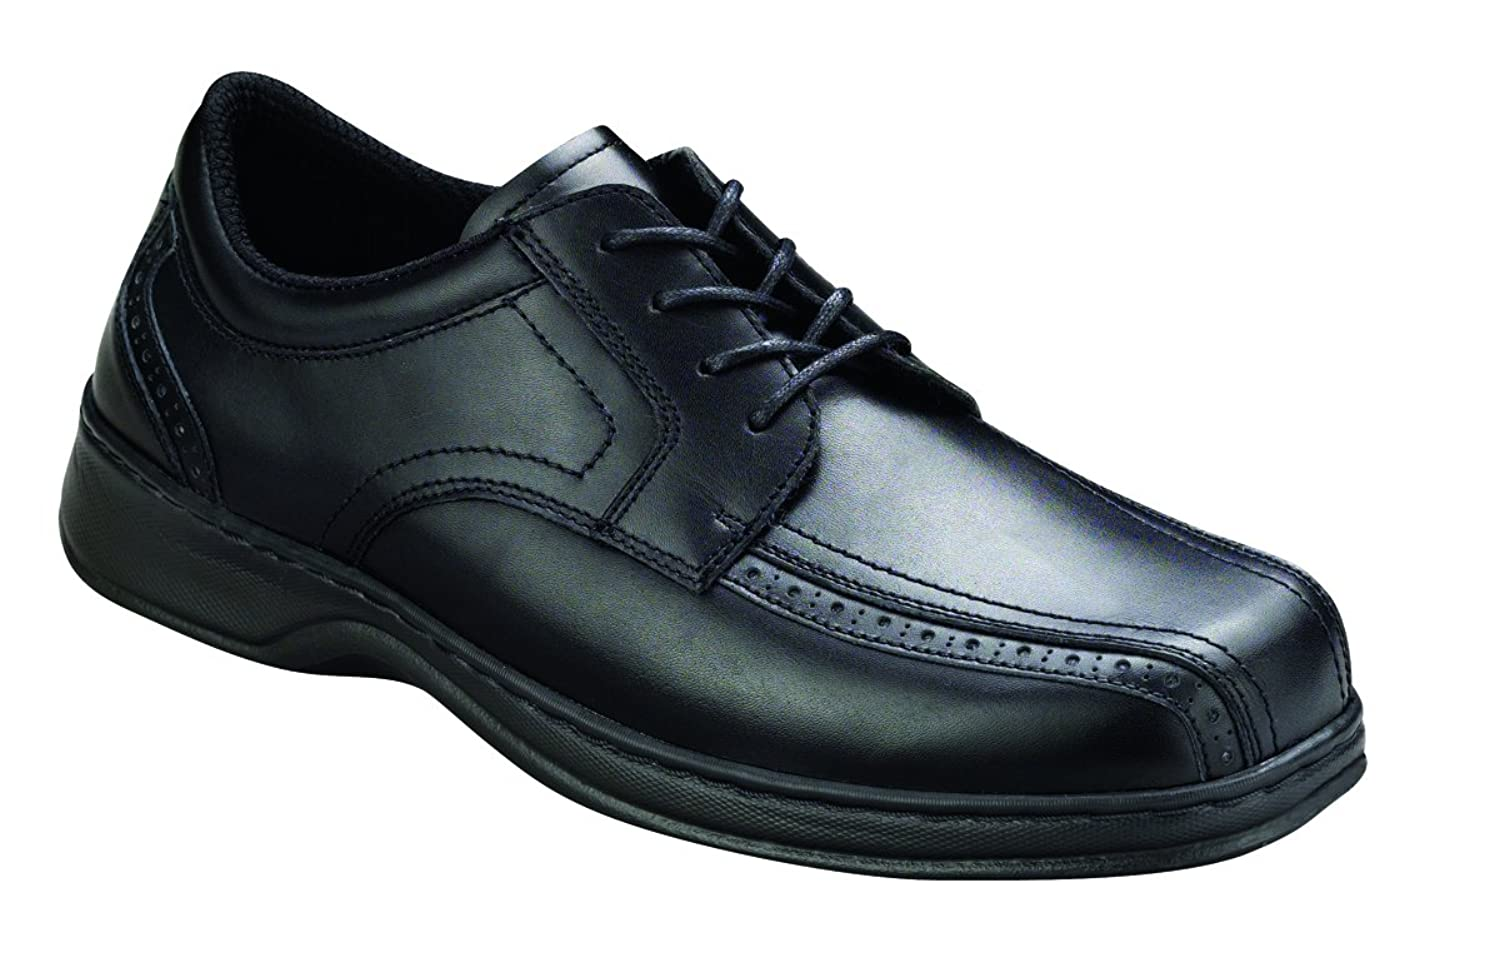 Orthofeet gramercy oxford shoes